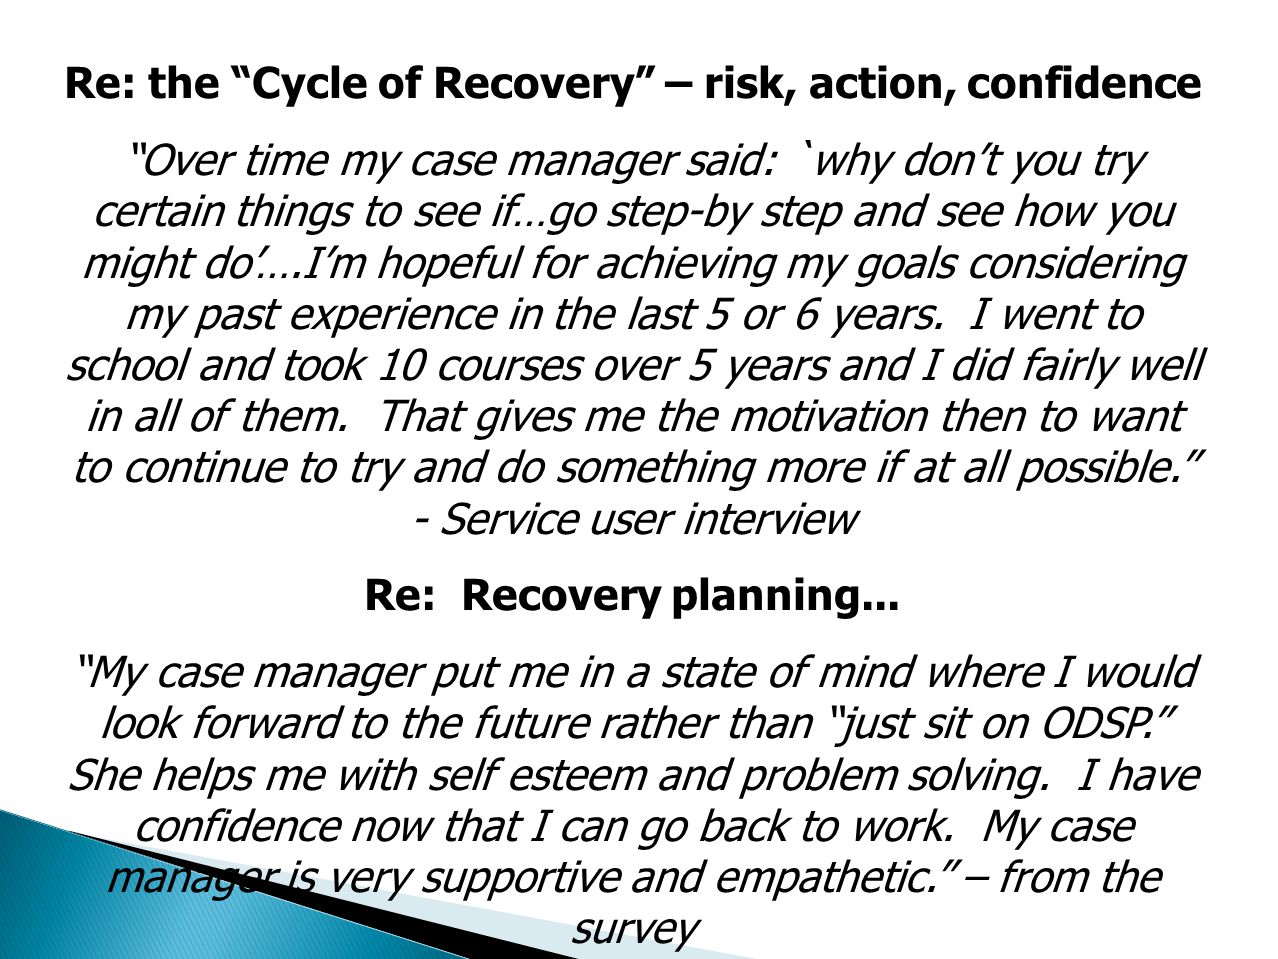 Re: the Cycle of Recovery – risk, action, confidence Over time my case manager said: `why don't you try certain things to see if…go step-by step and see how you might do'….I'm hopeful for achieving my goals considering my past experience in the last 5 or 6 years.